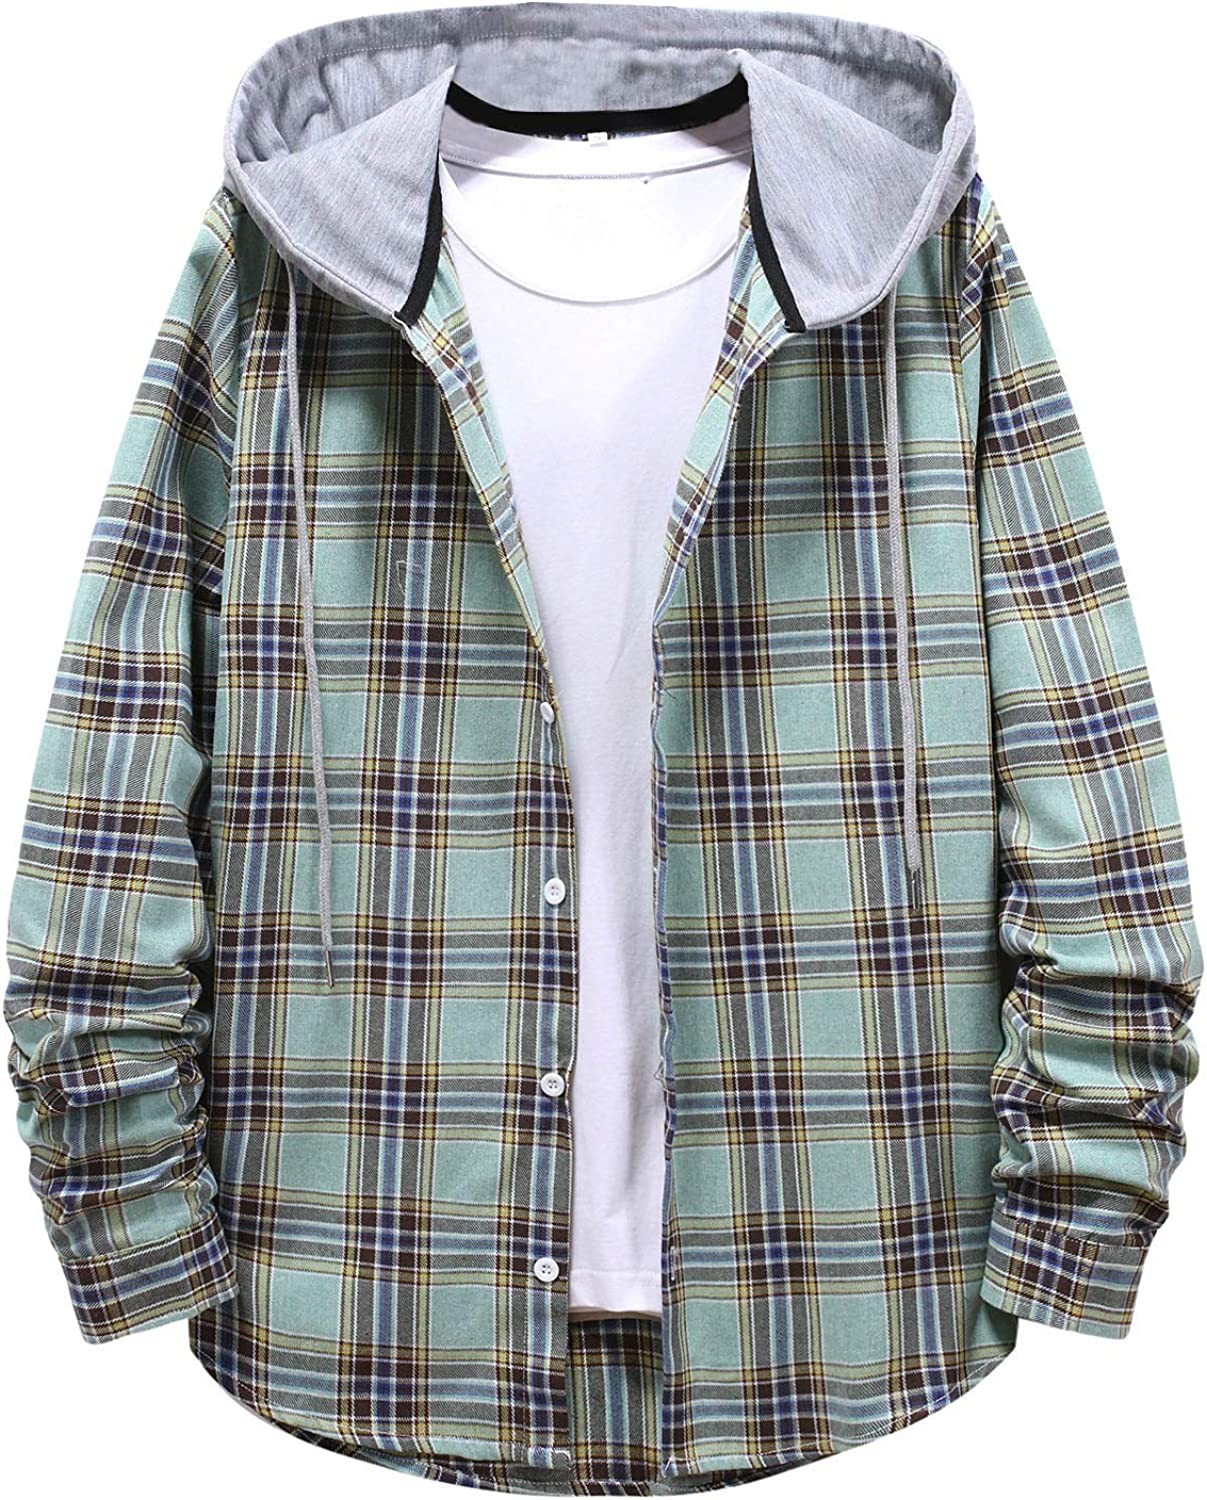 Large Size Hooded Coat for Men Fashion Plaid Button Down Loose Sporty Outwear Casual Cotton Sweatshirt